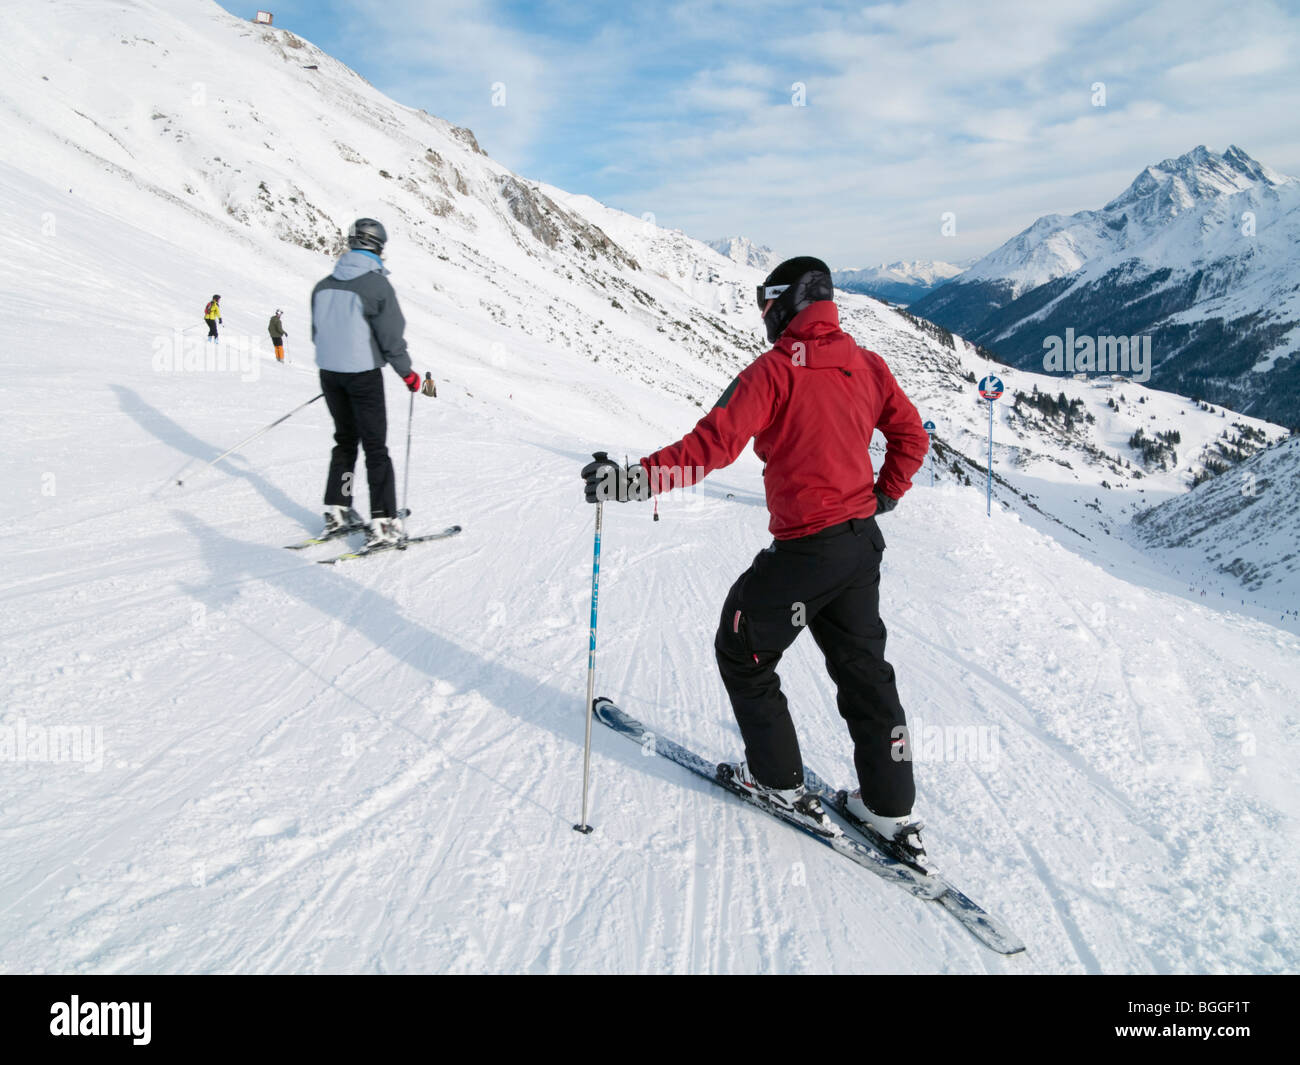 St Anton am Arlberg, Tyrol, Austria, Europe. Skier in red jacket on snow covered ski slopes in the Austrian Alps. Stock Photo